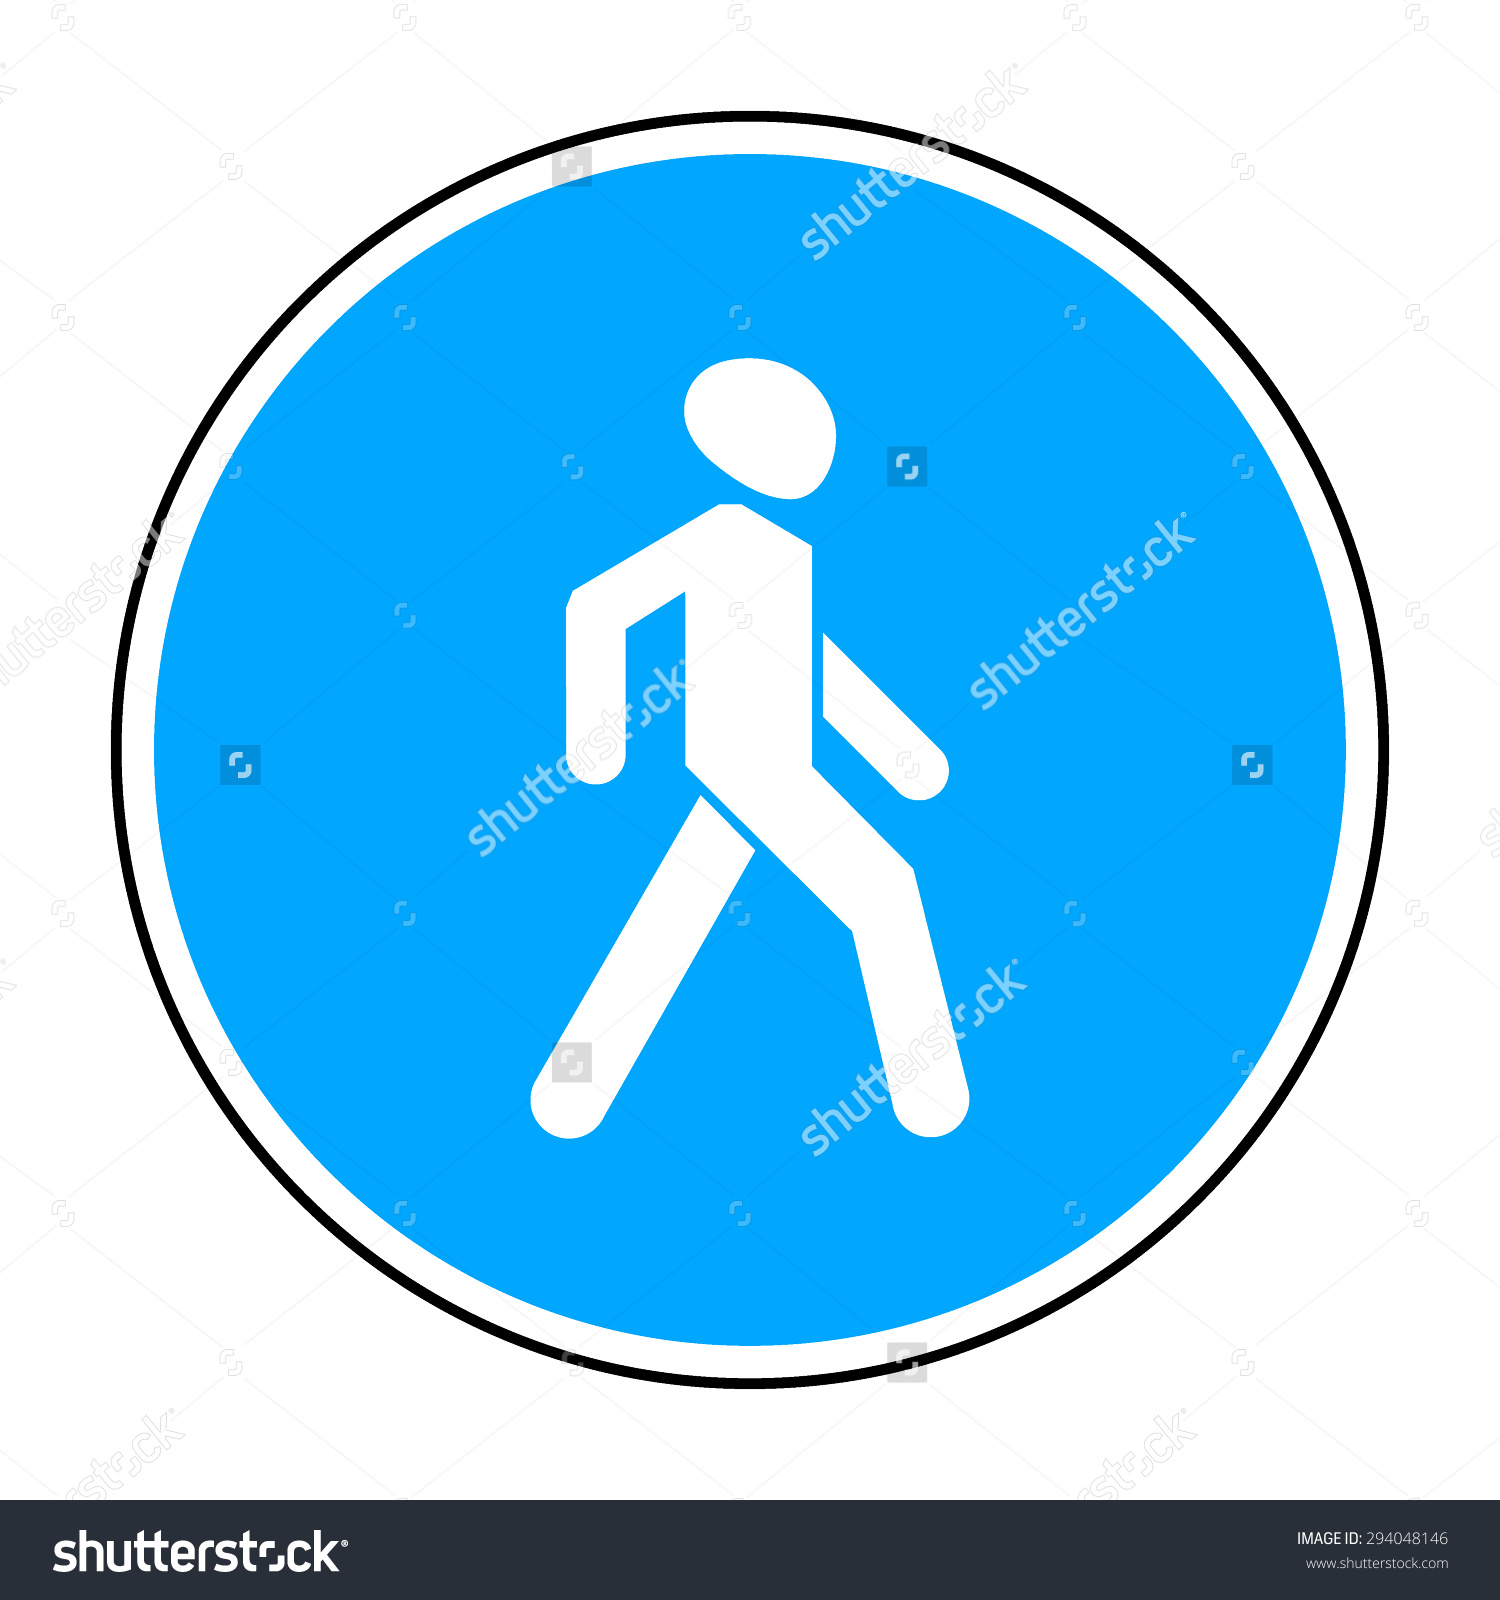 Footpath Road Sign Blue Circle Isolated Stock Vector 294048146.